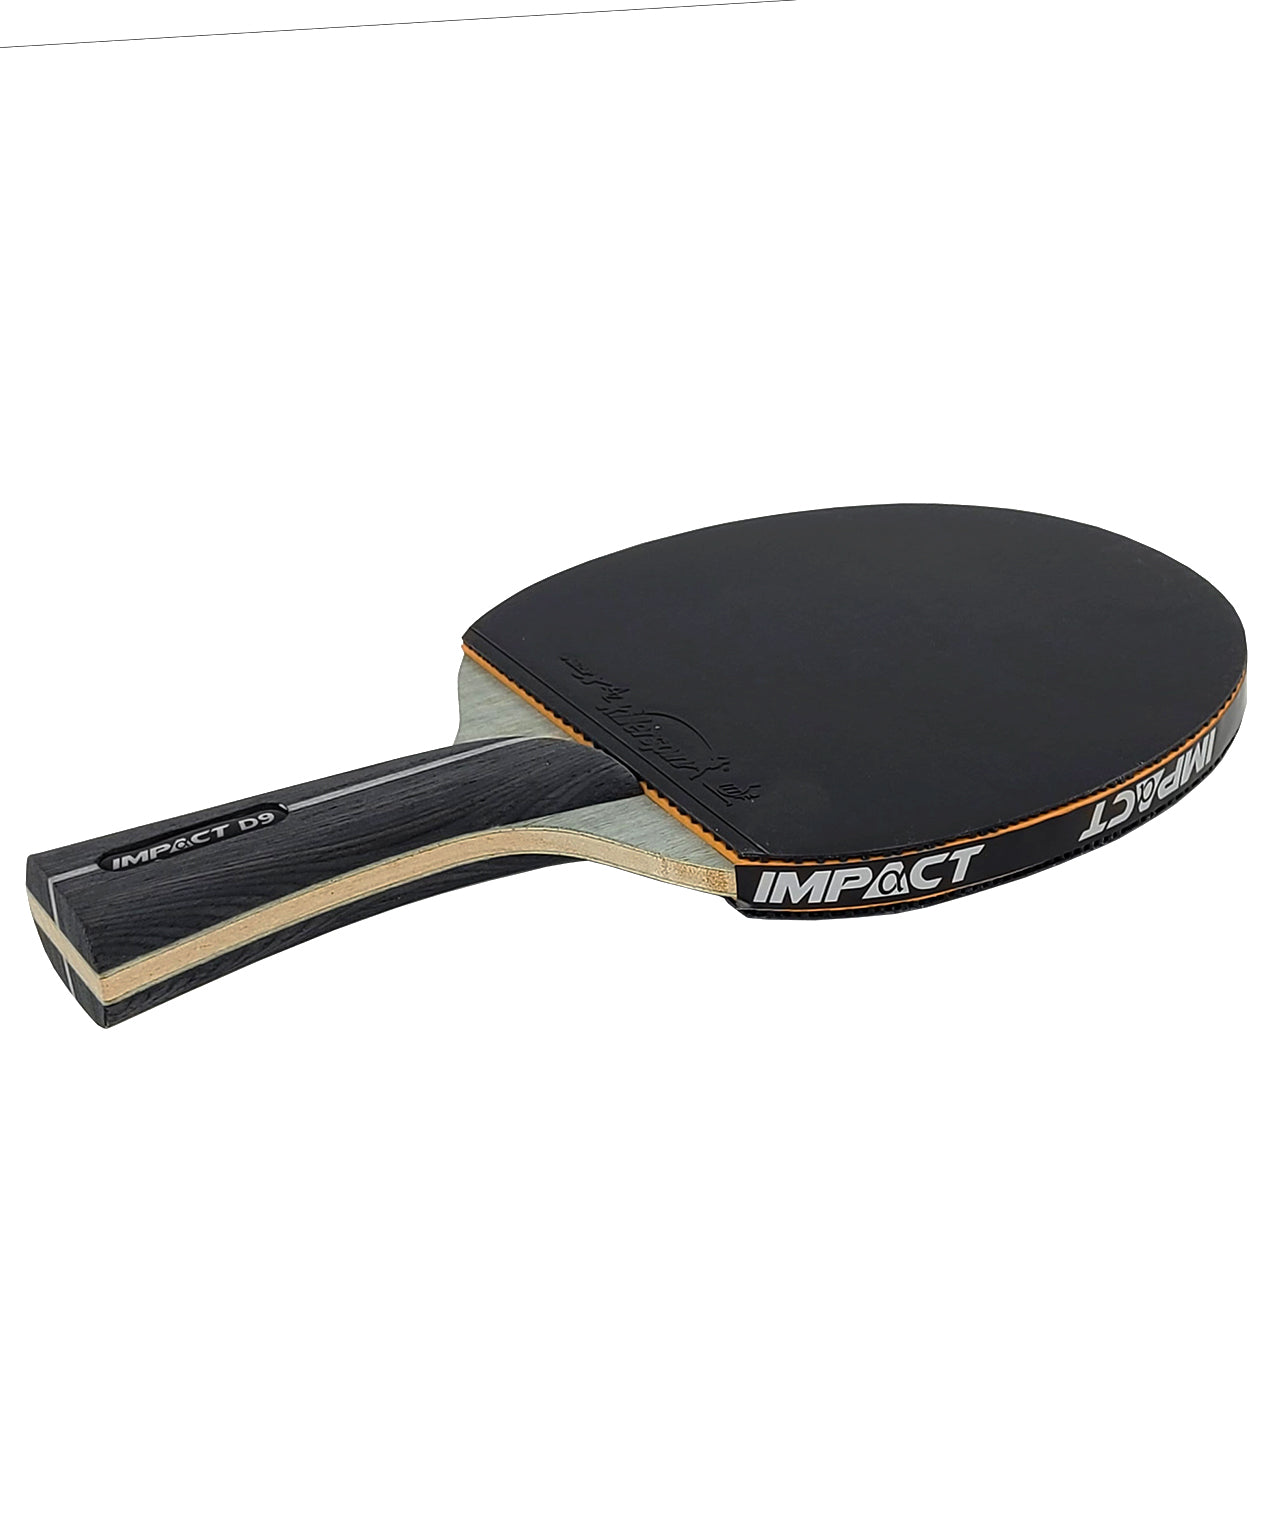 killerspin-ping-pong-paddle-impact-D9-smart-grip-memory-book-racket-handle